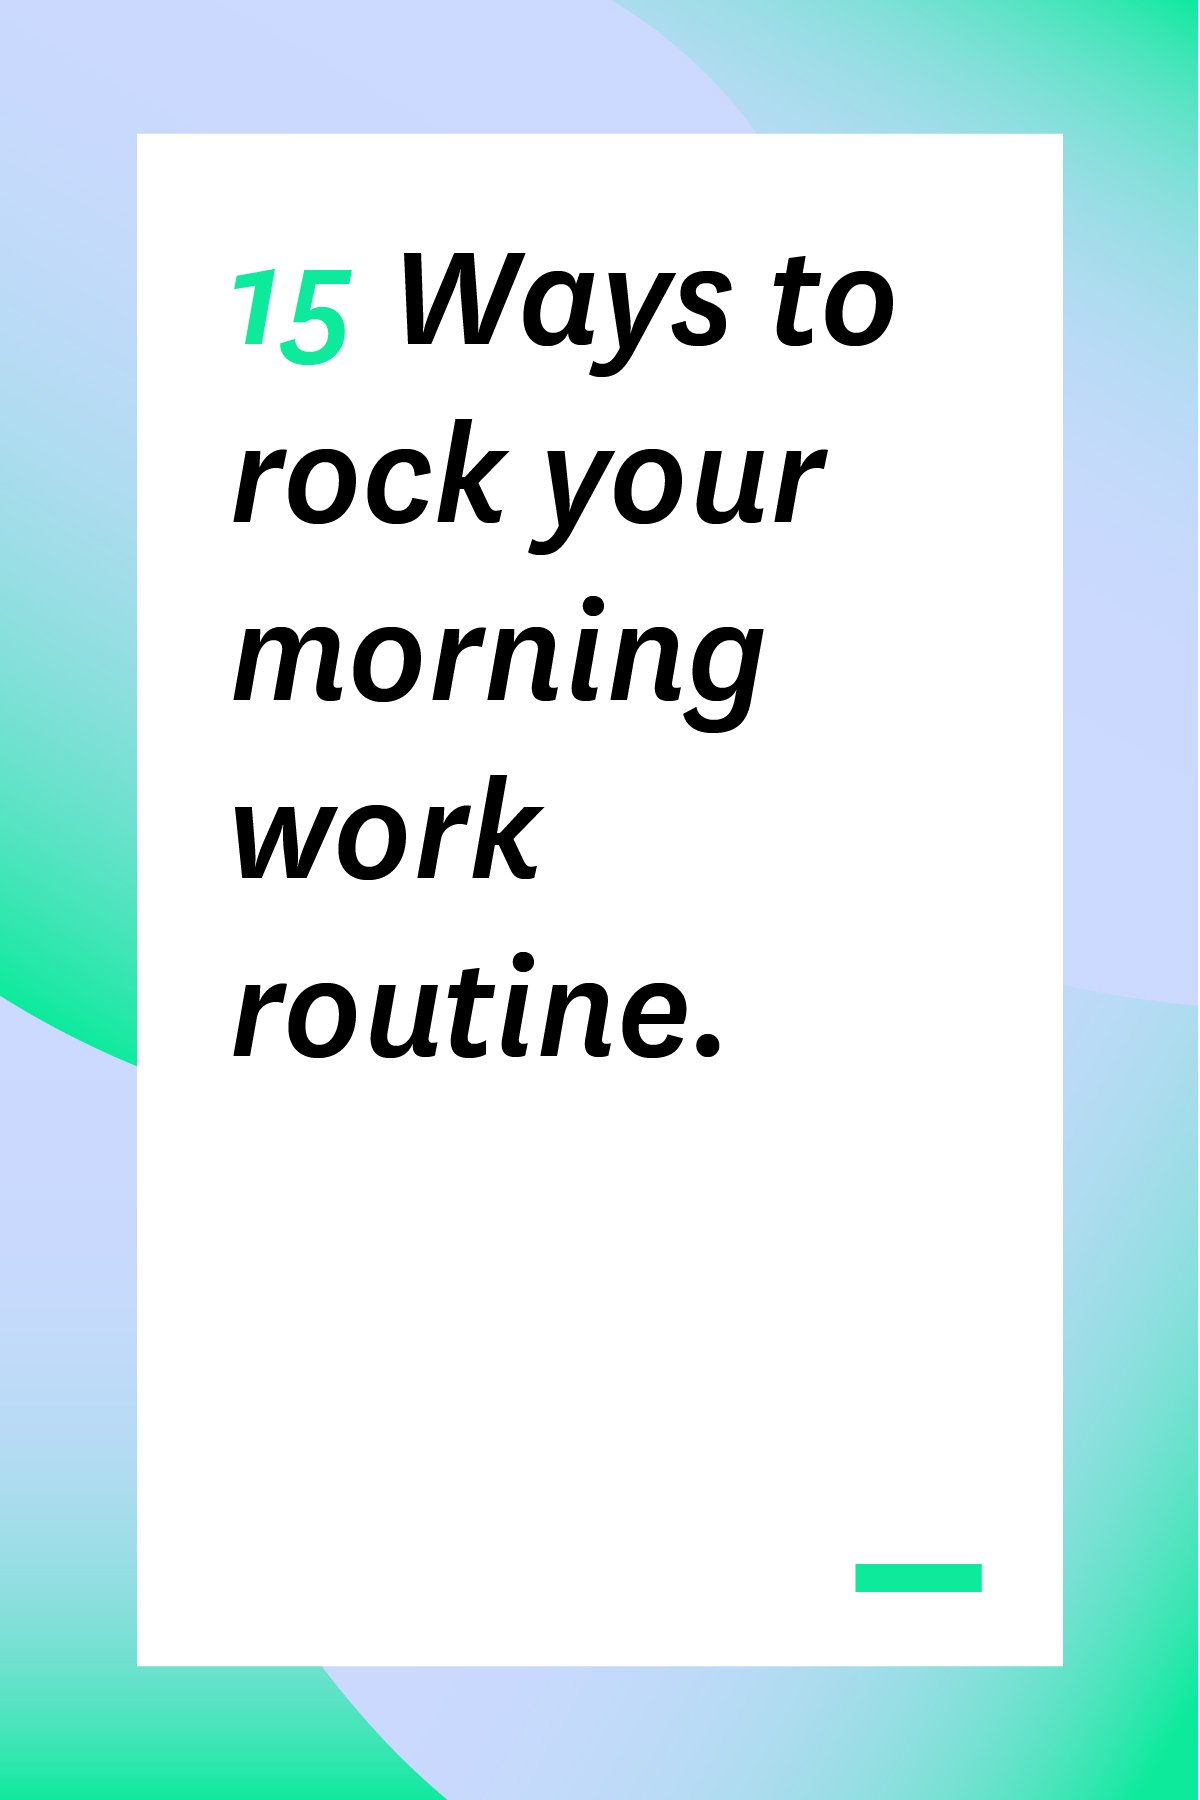 If your morning routine at work doesn't feel peaceful and productive, don't worry. Mix and match the strategies in this article to create a personalized routine that will help you start the day right, every day.